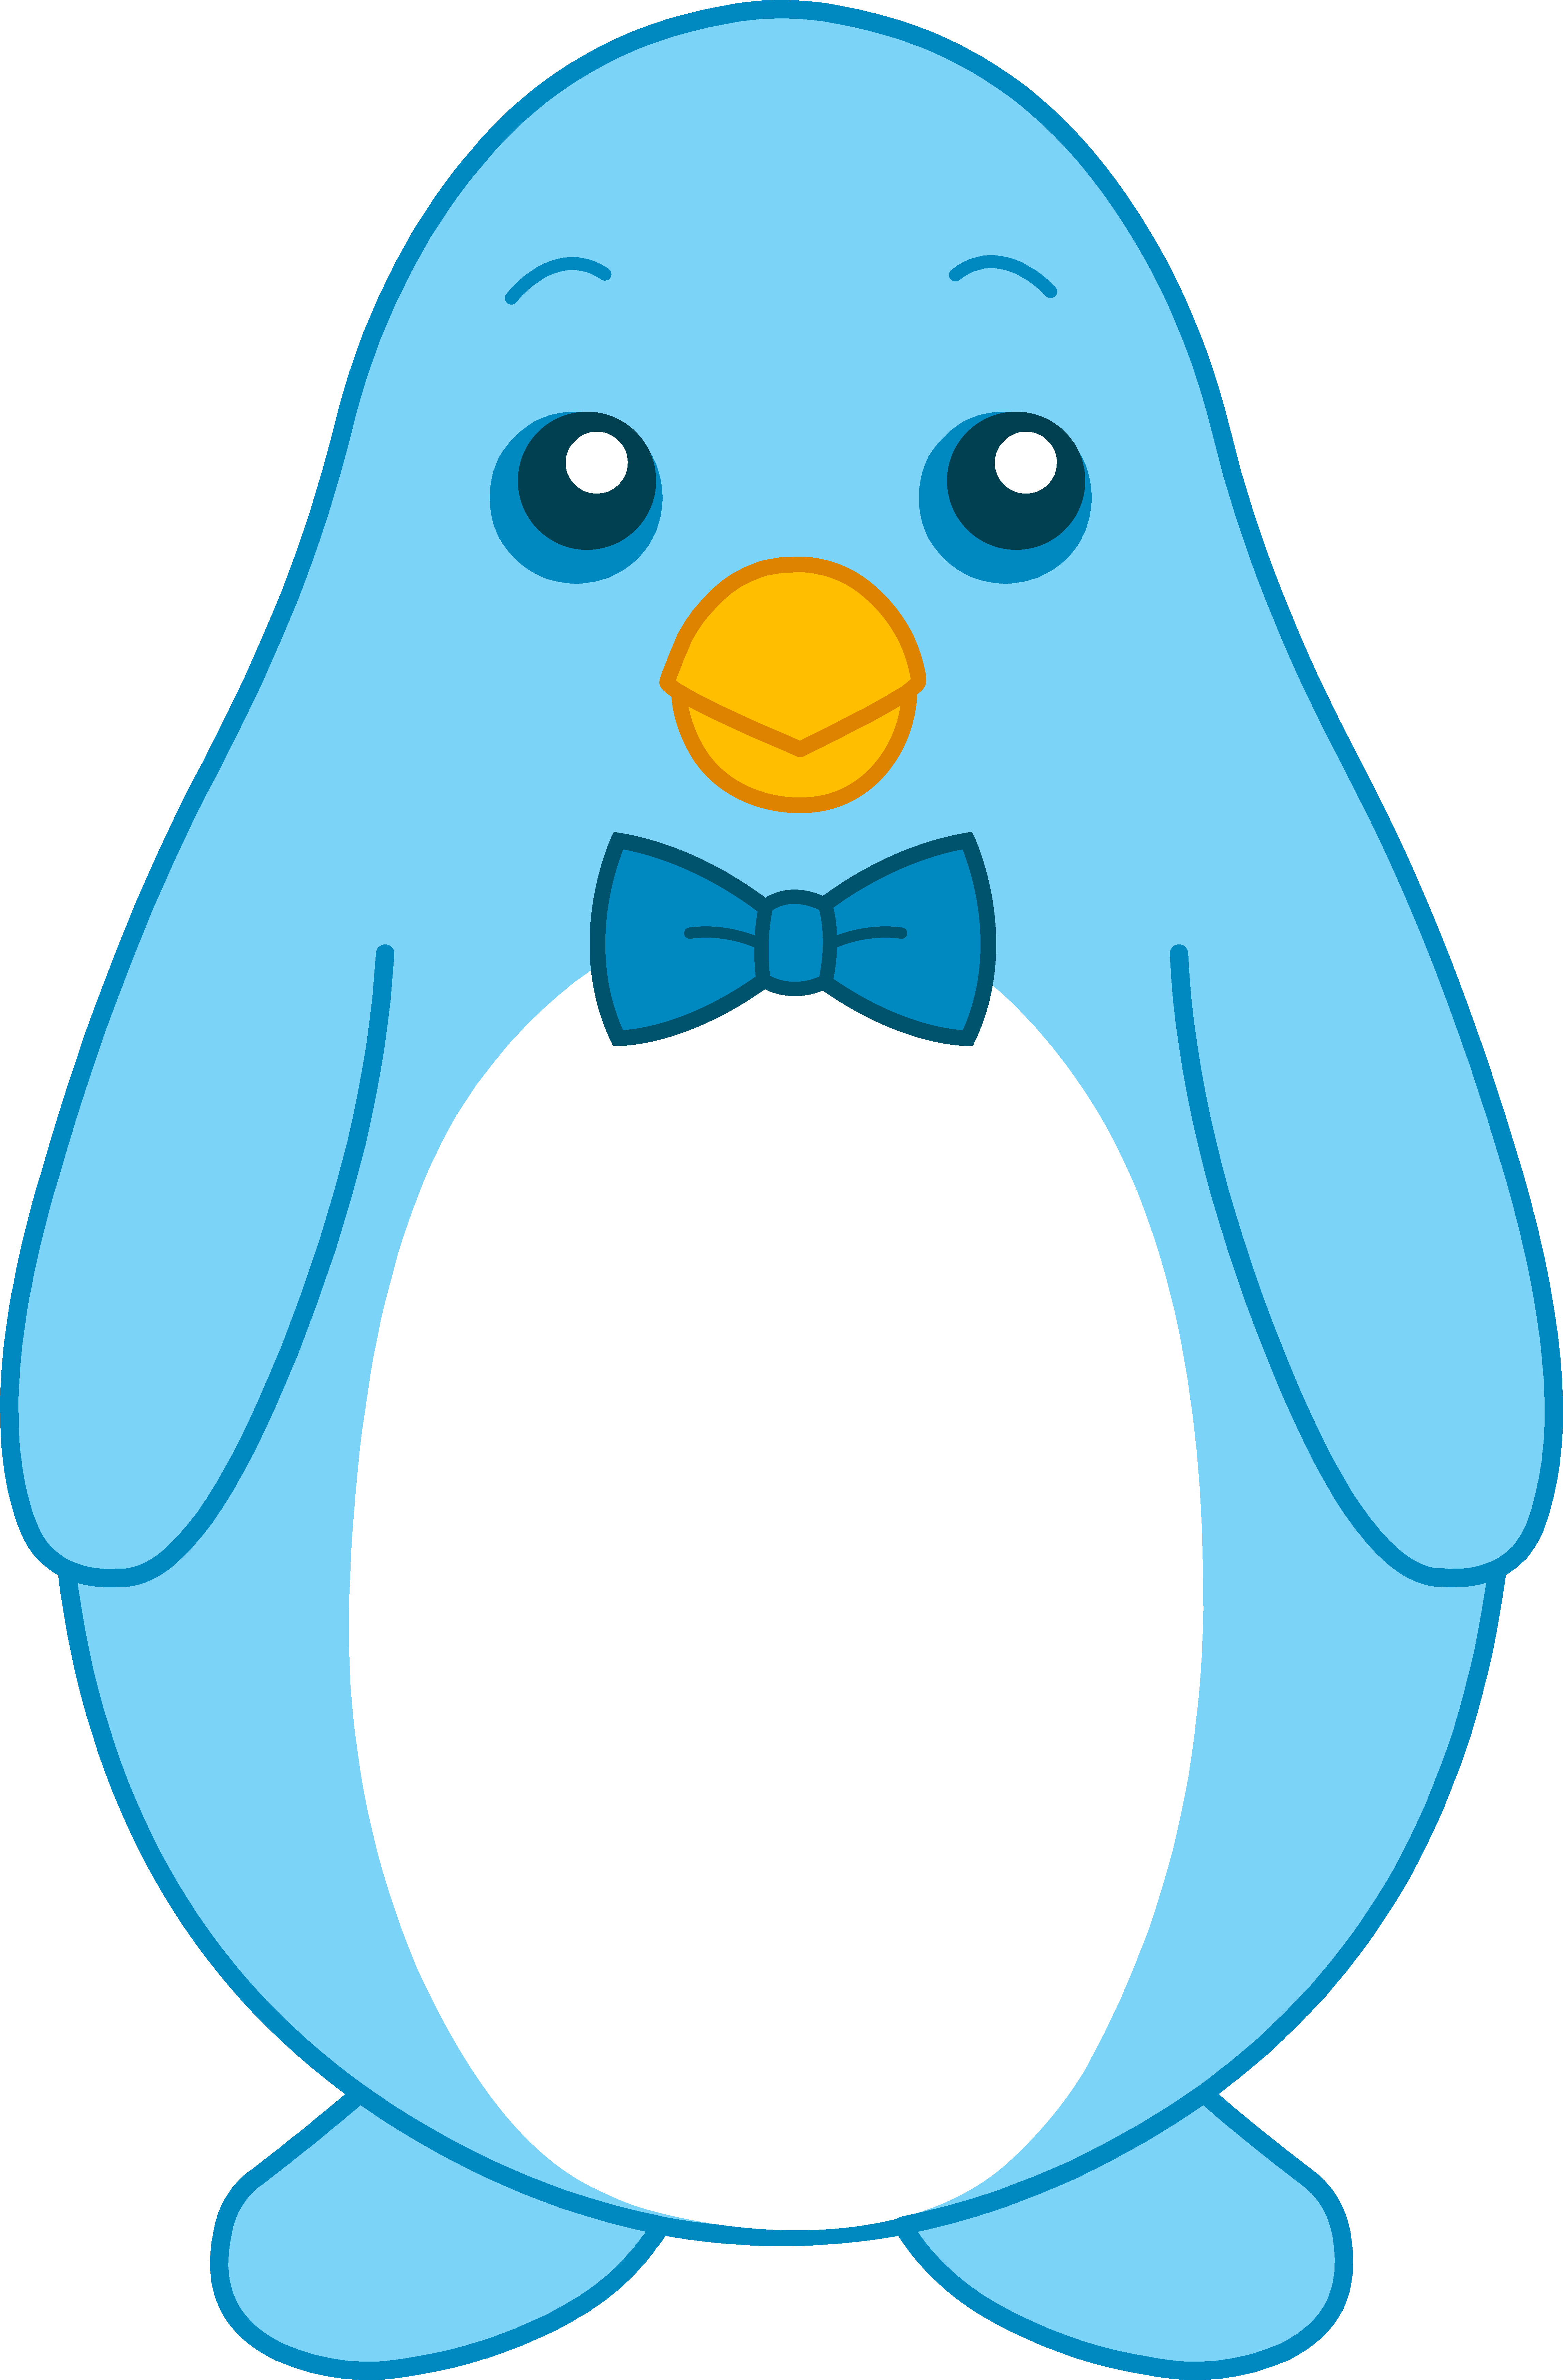 Penguin clip art little penguin. Blue with bow tie